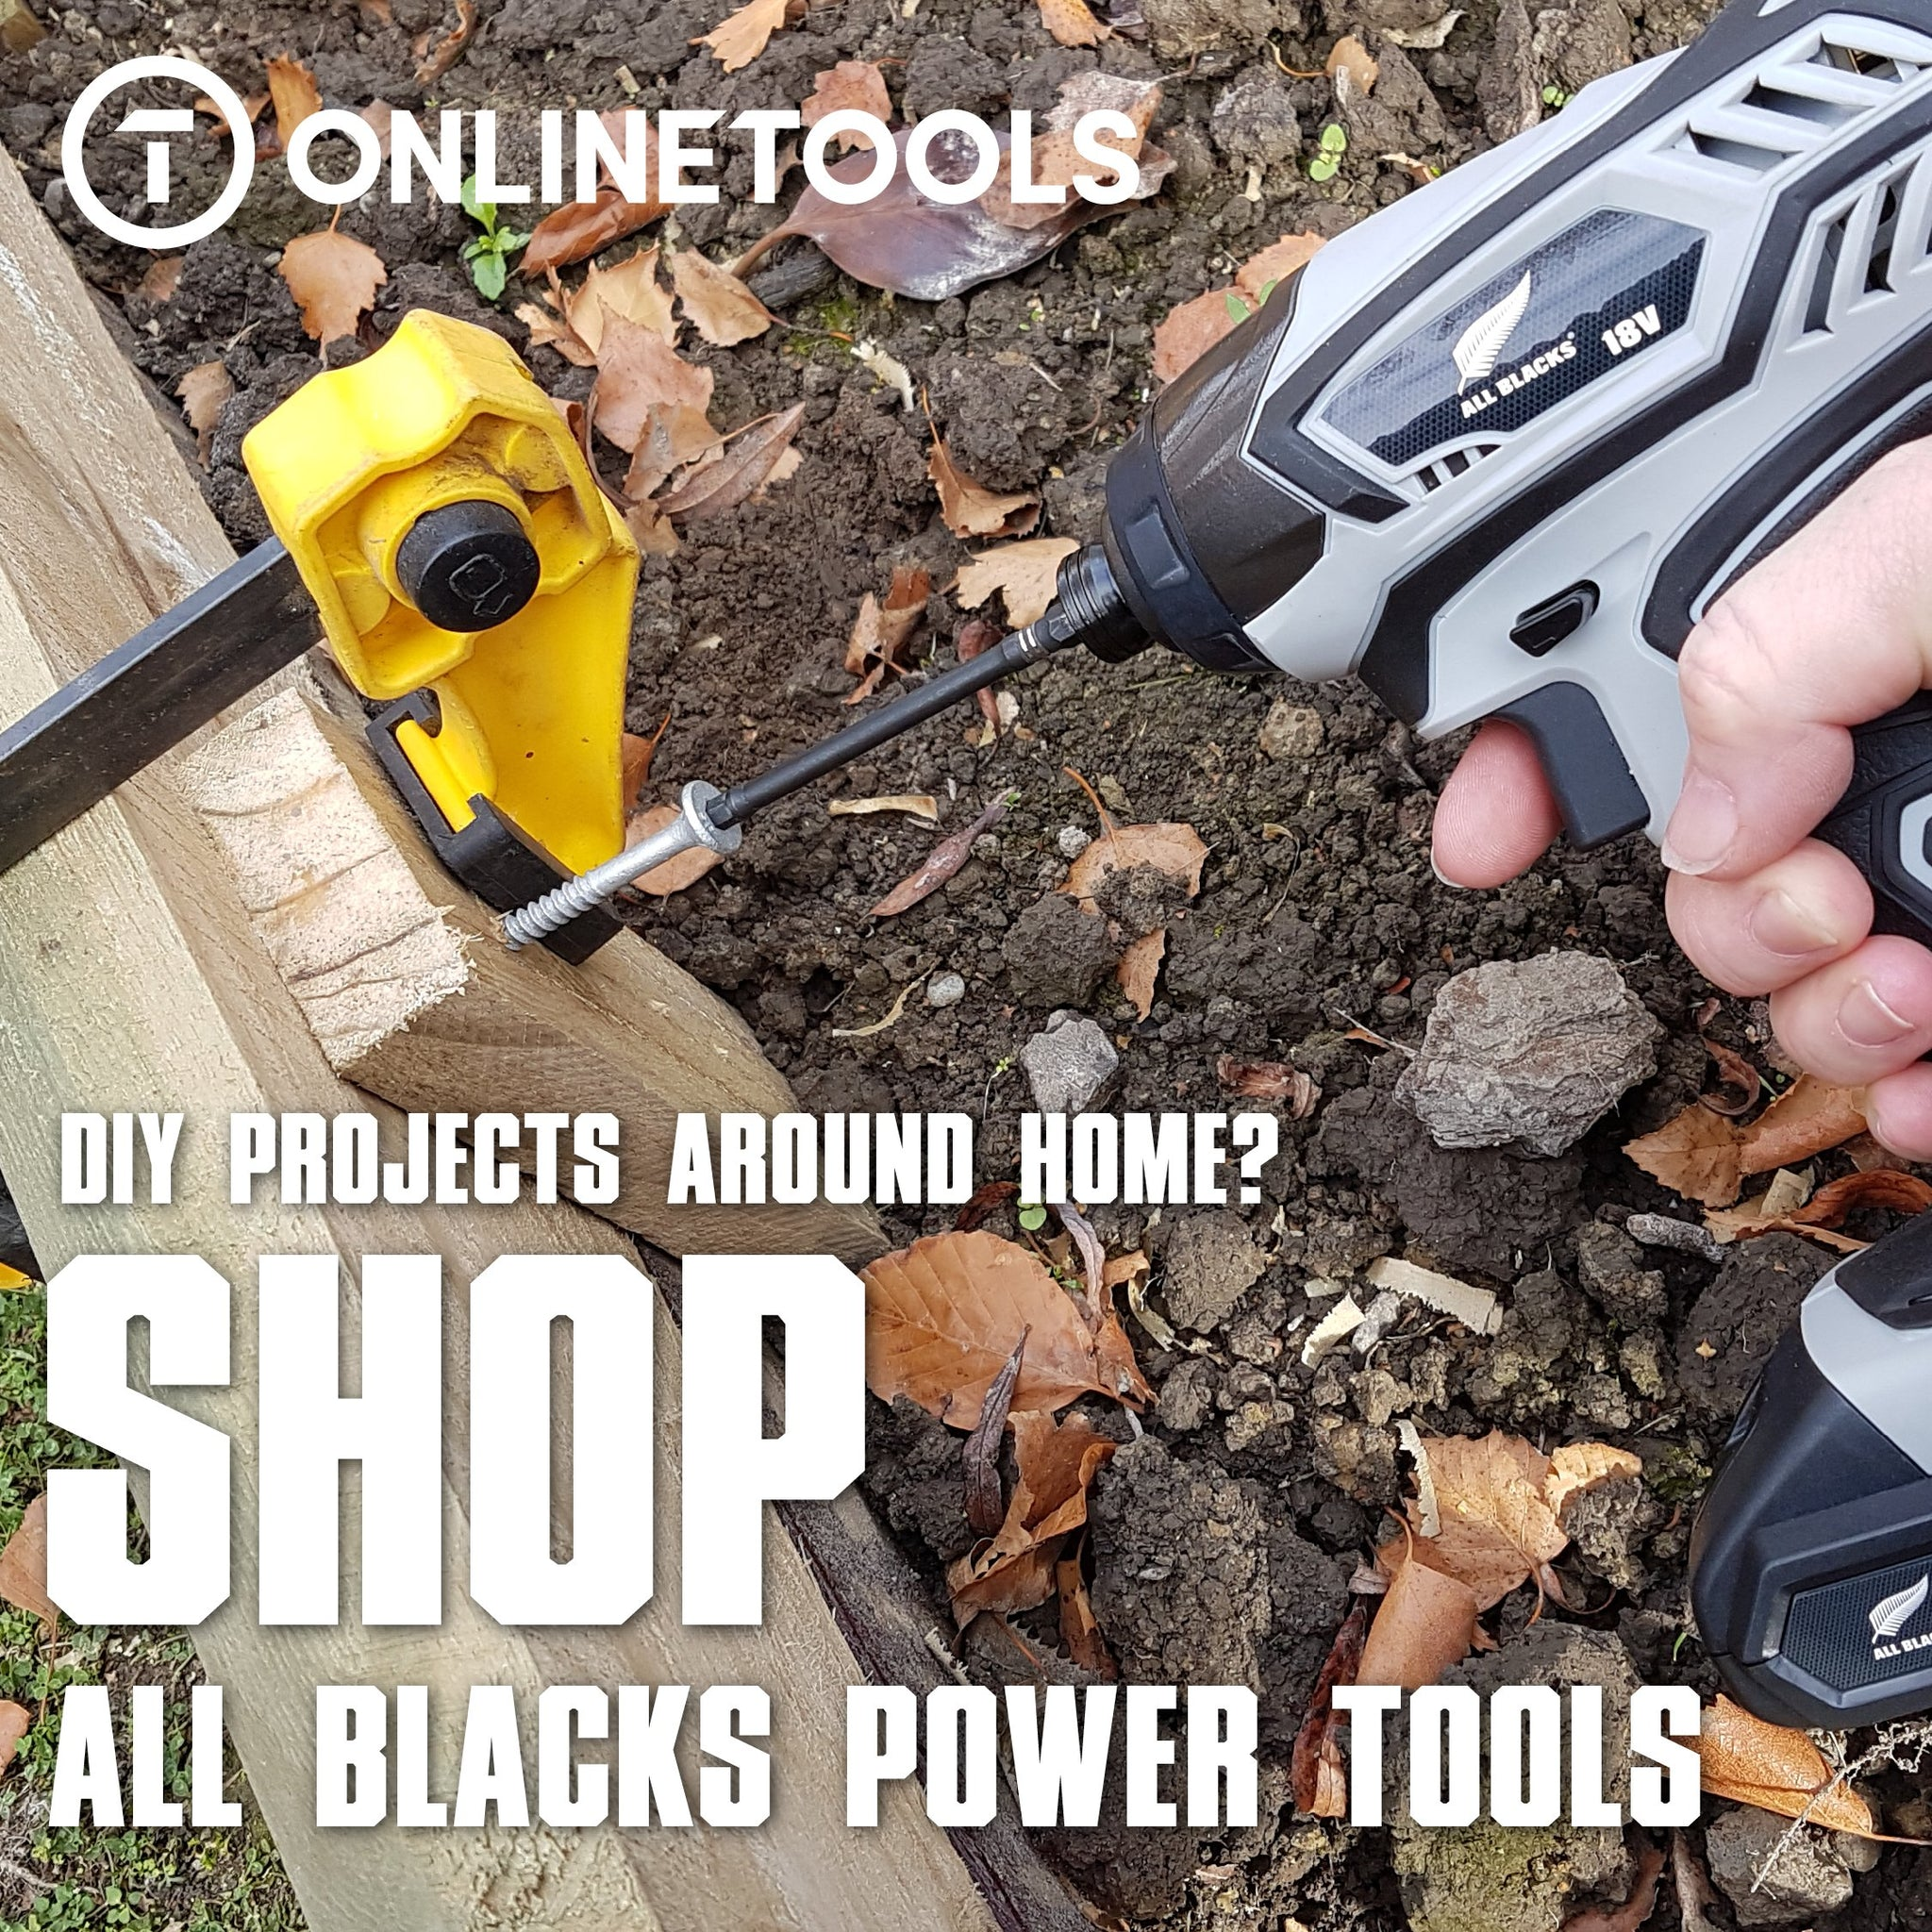 All Blacks Power Tools